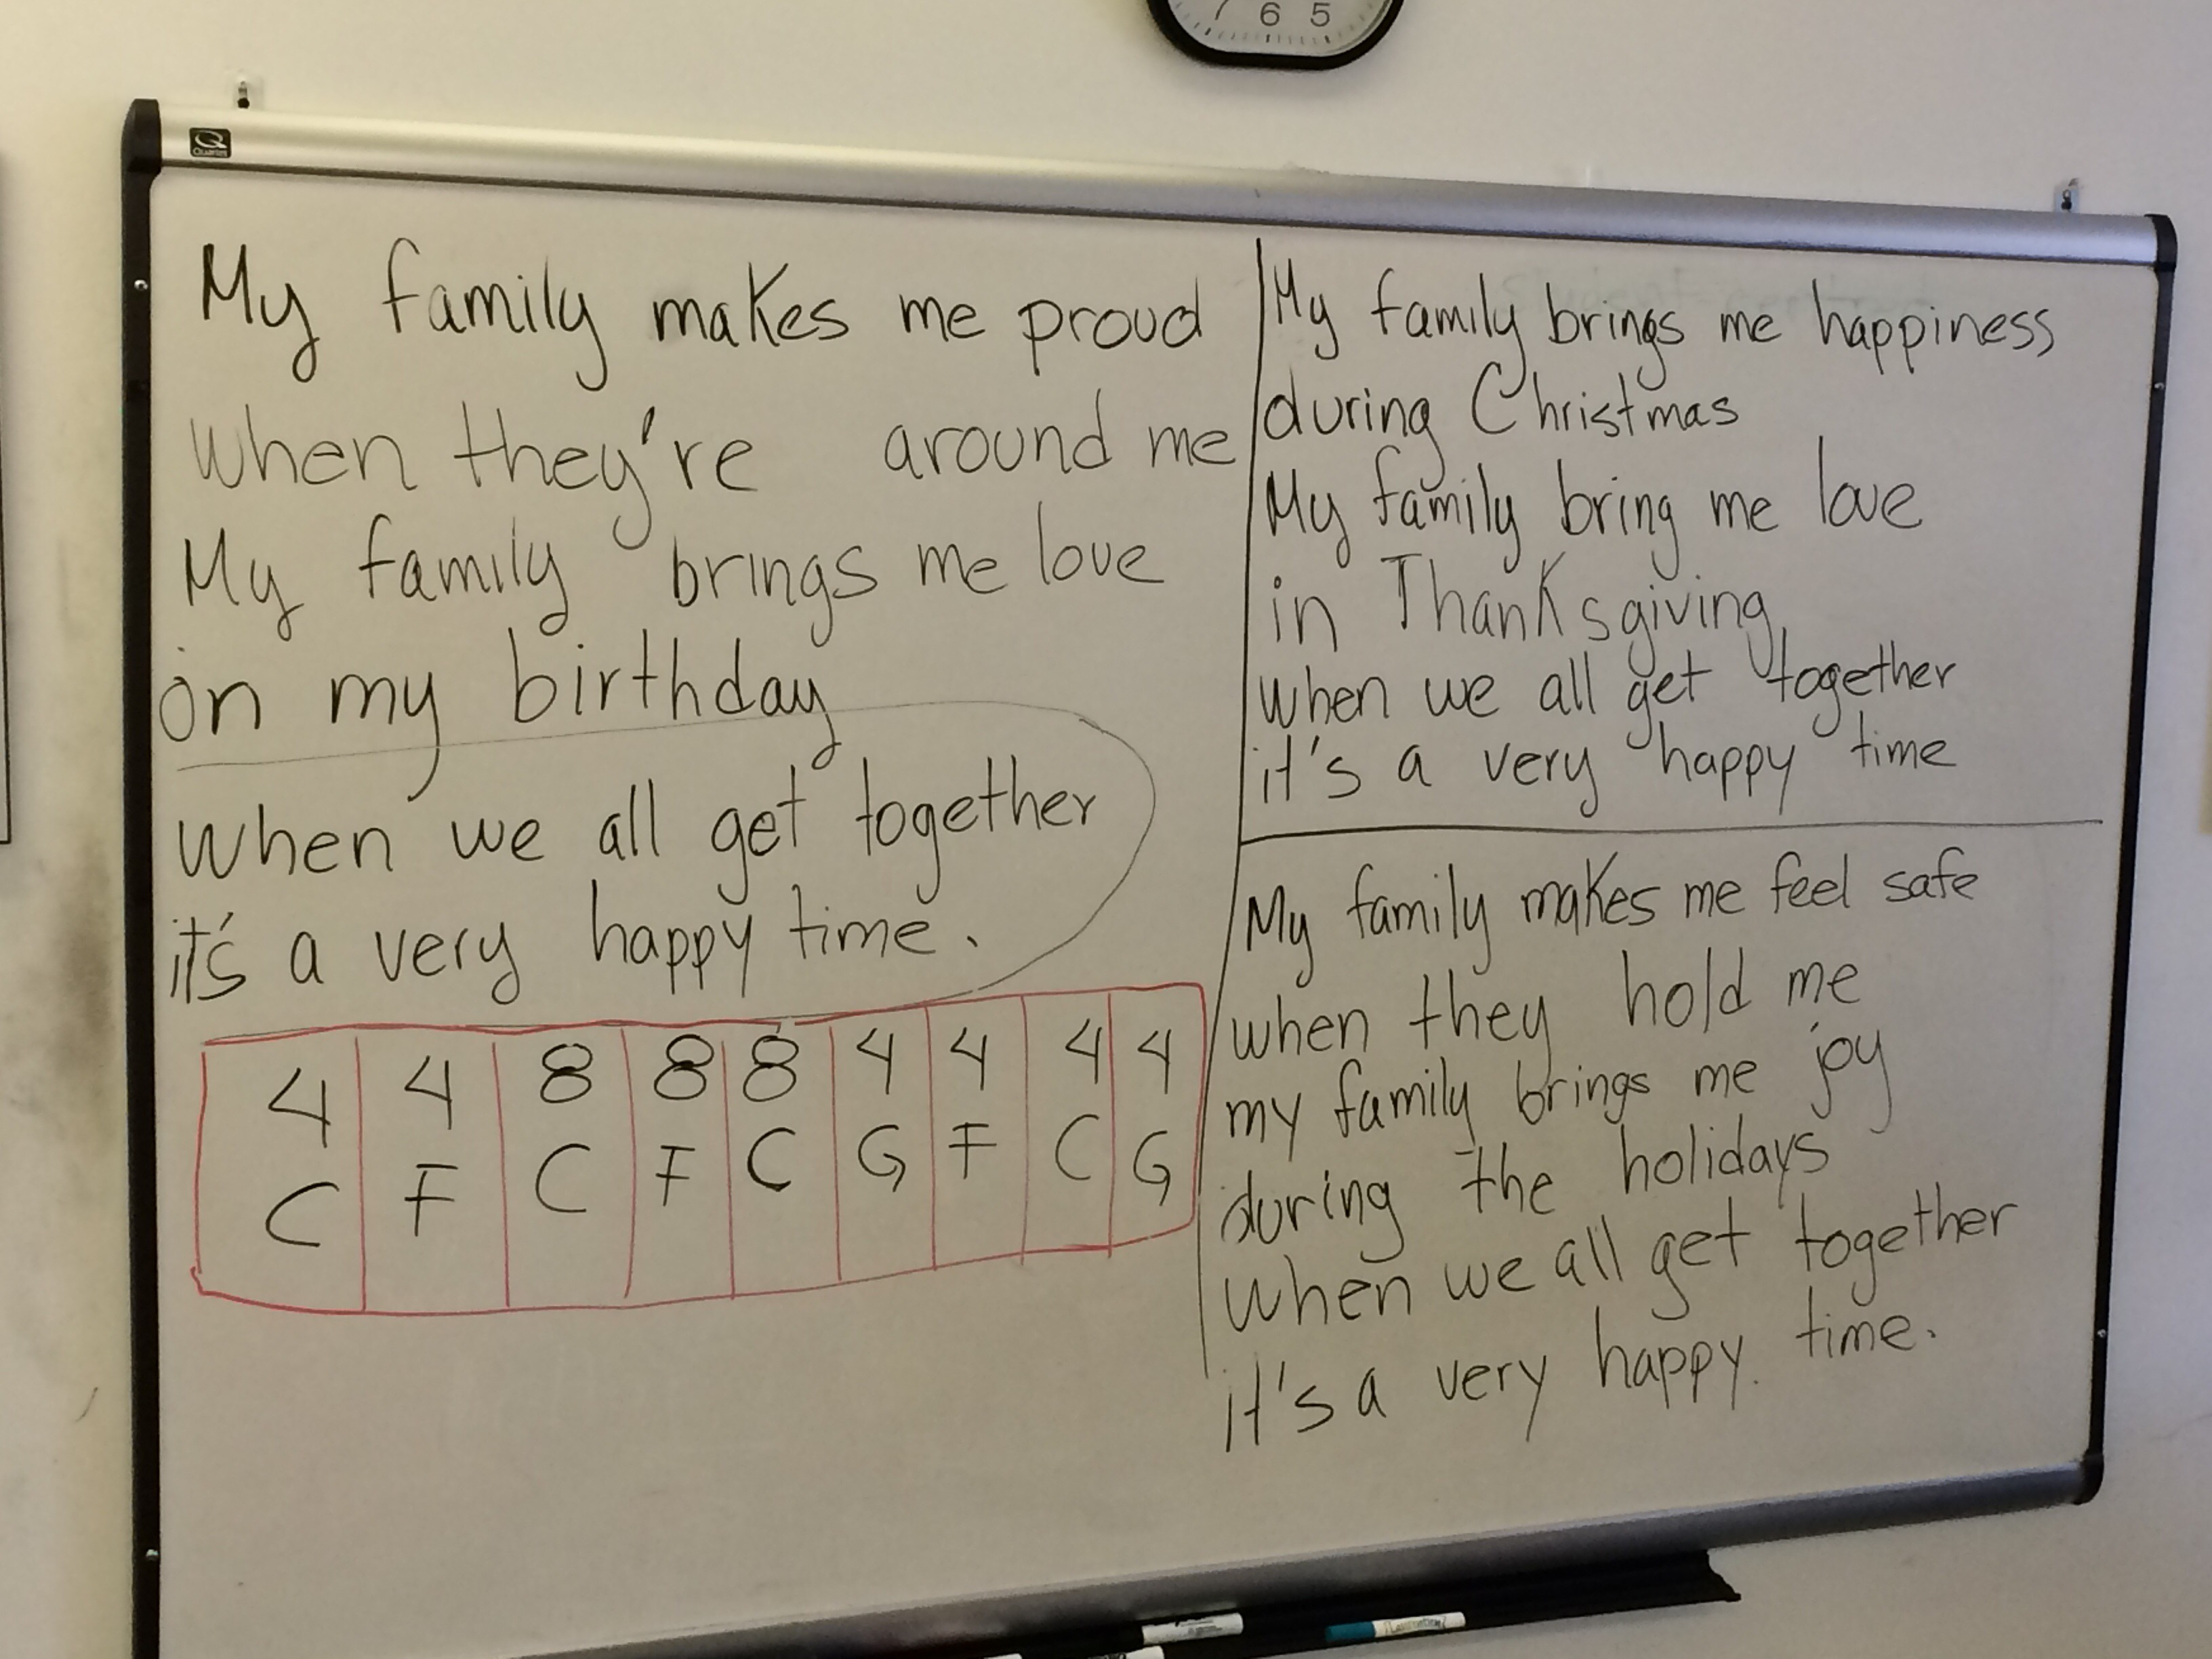 photo of the whiteboard showing revised version of kids' first song.